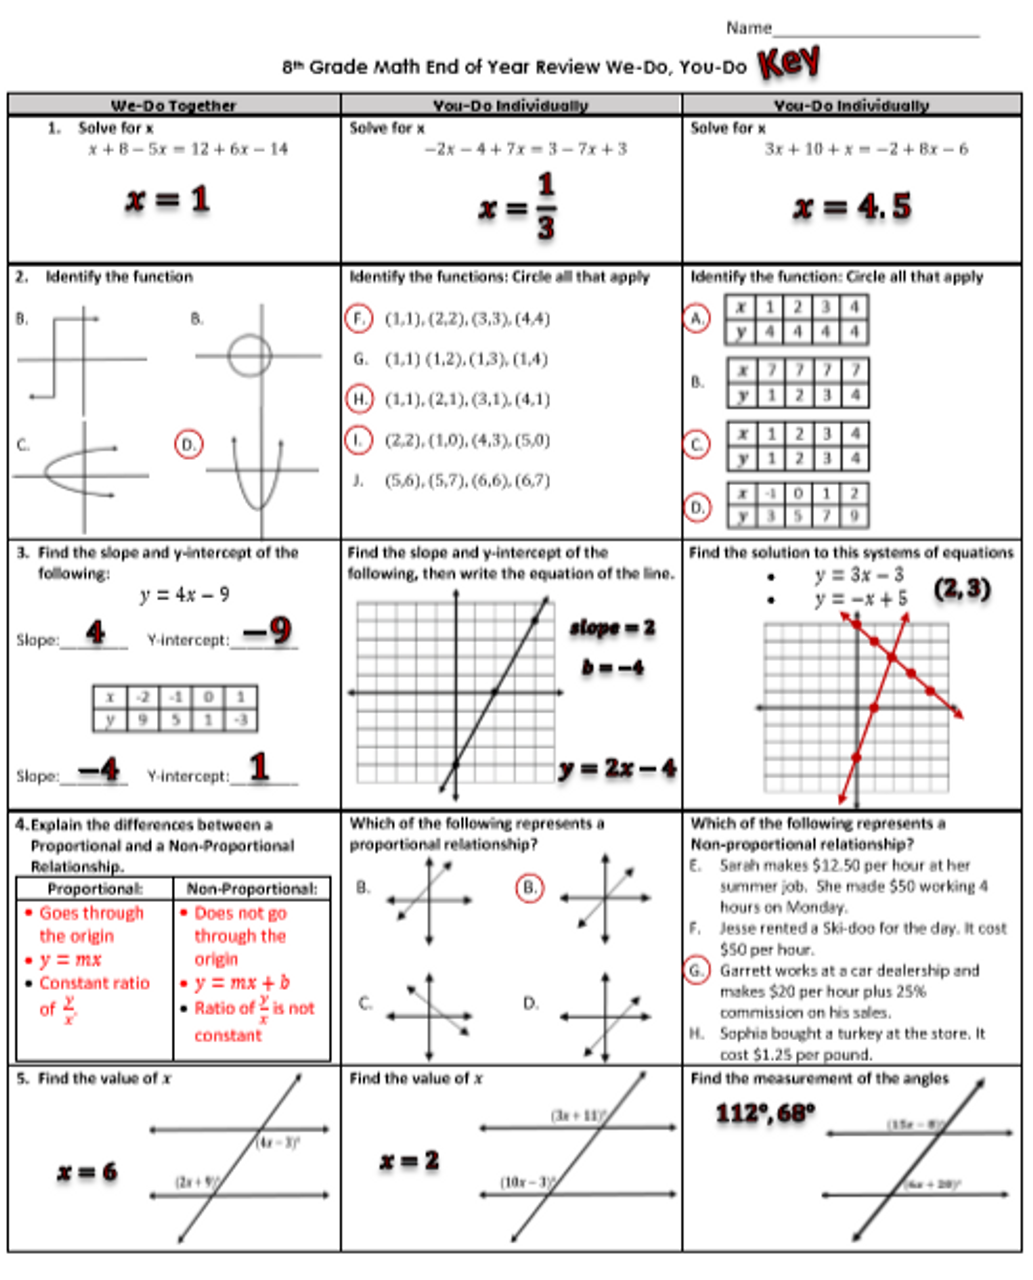 8th Grade Math End of Year Review You Do, We do